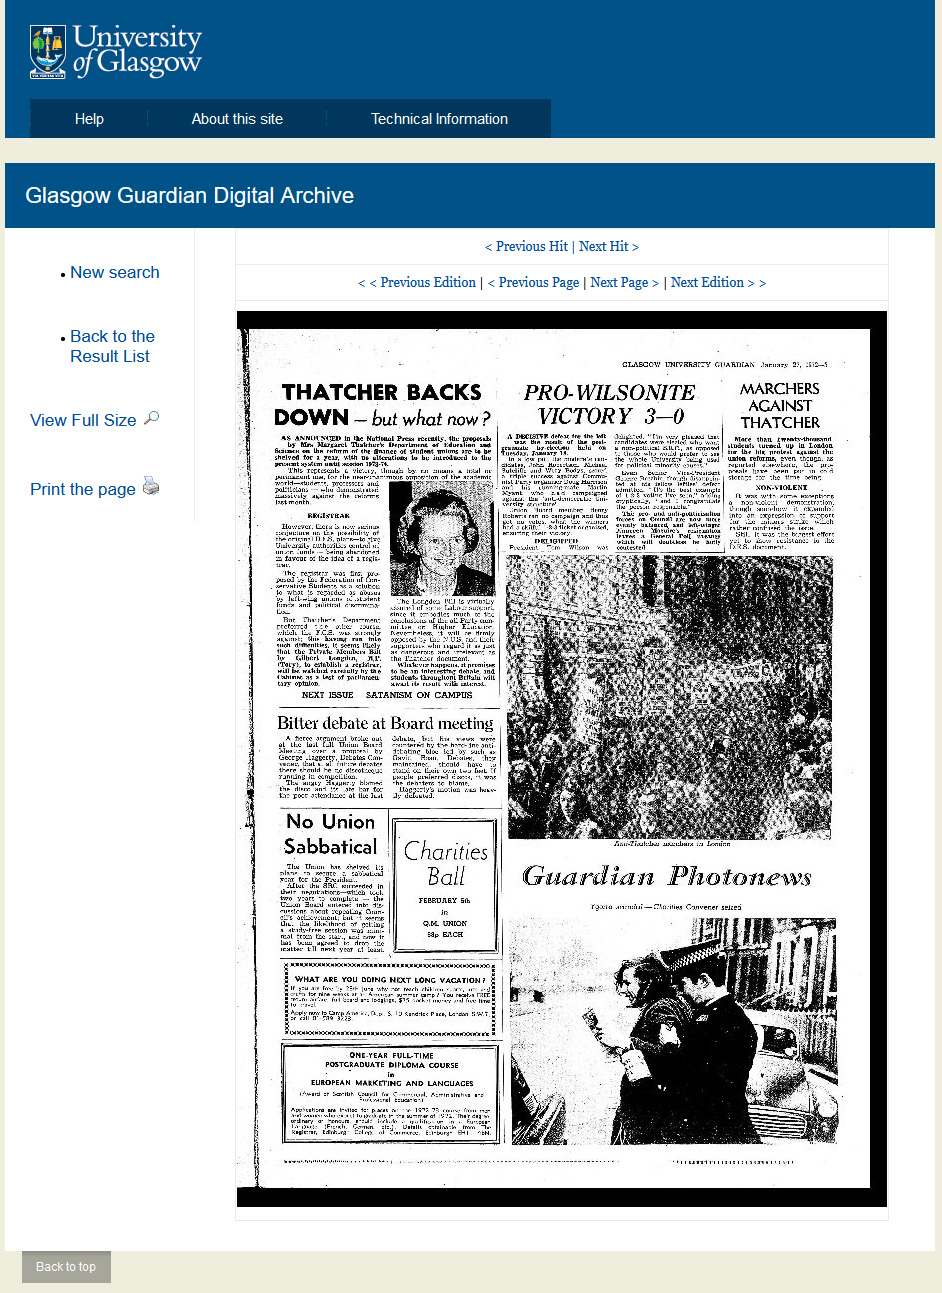 Search results page showing an image of the newspaper